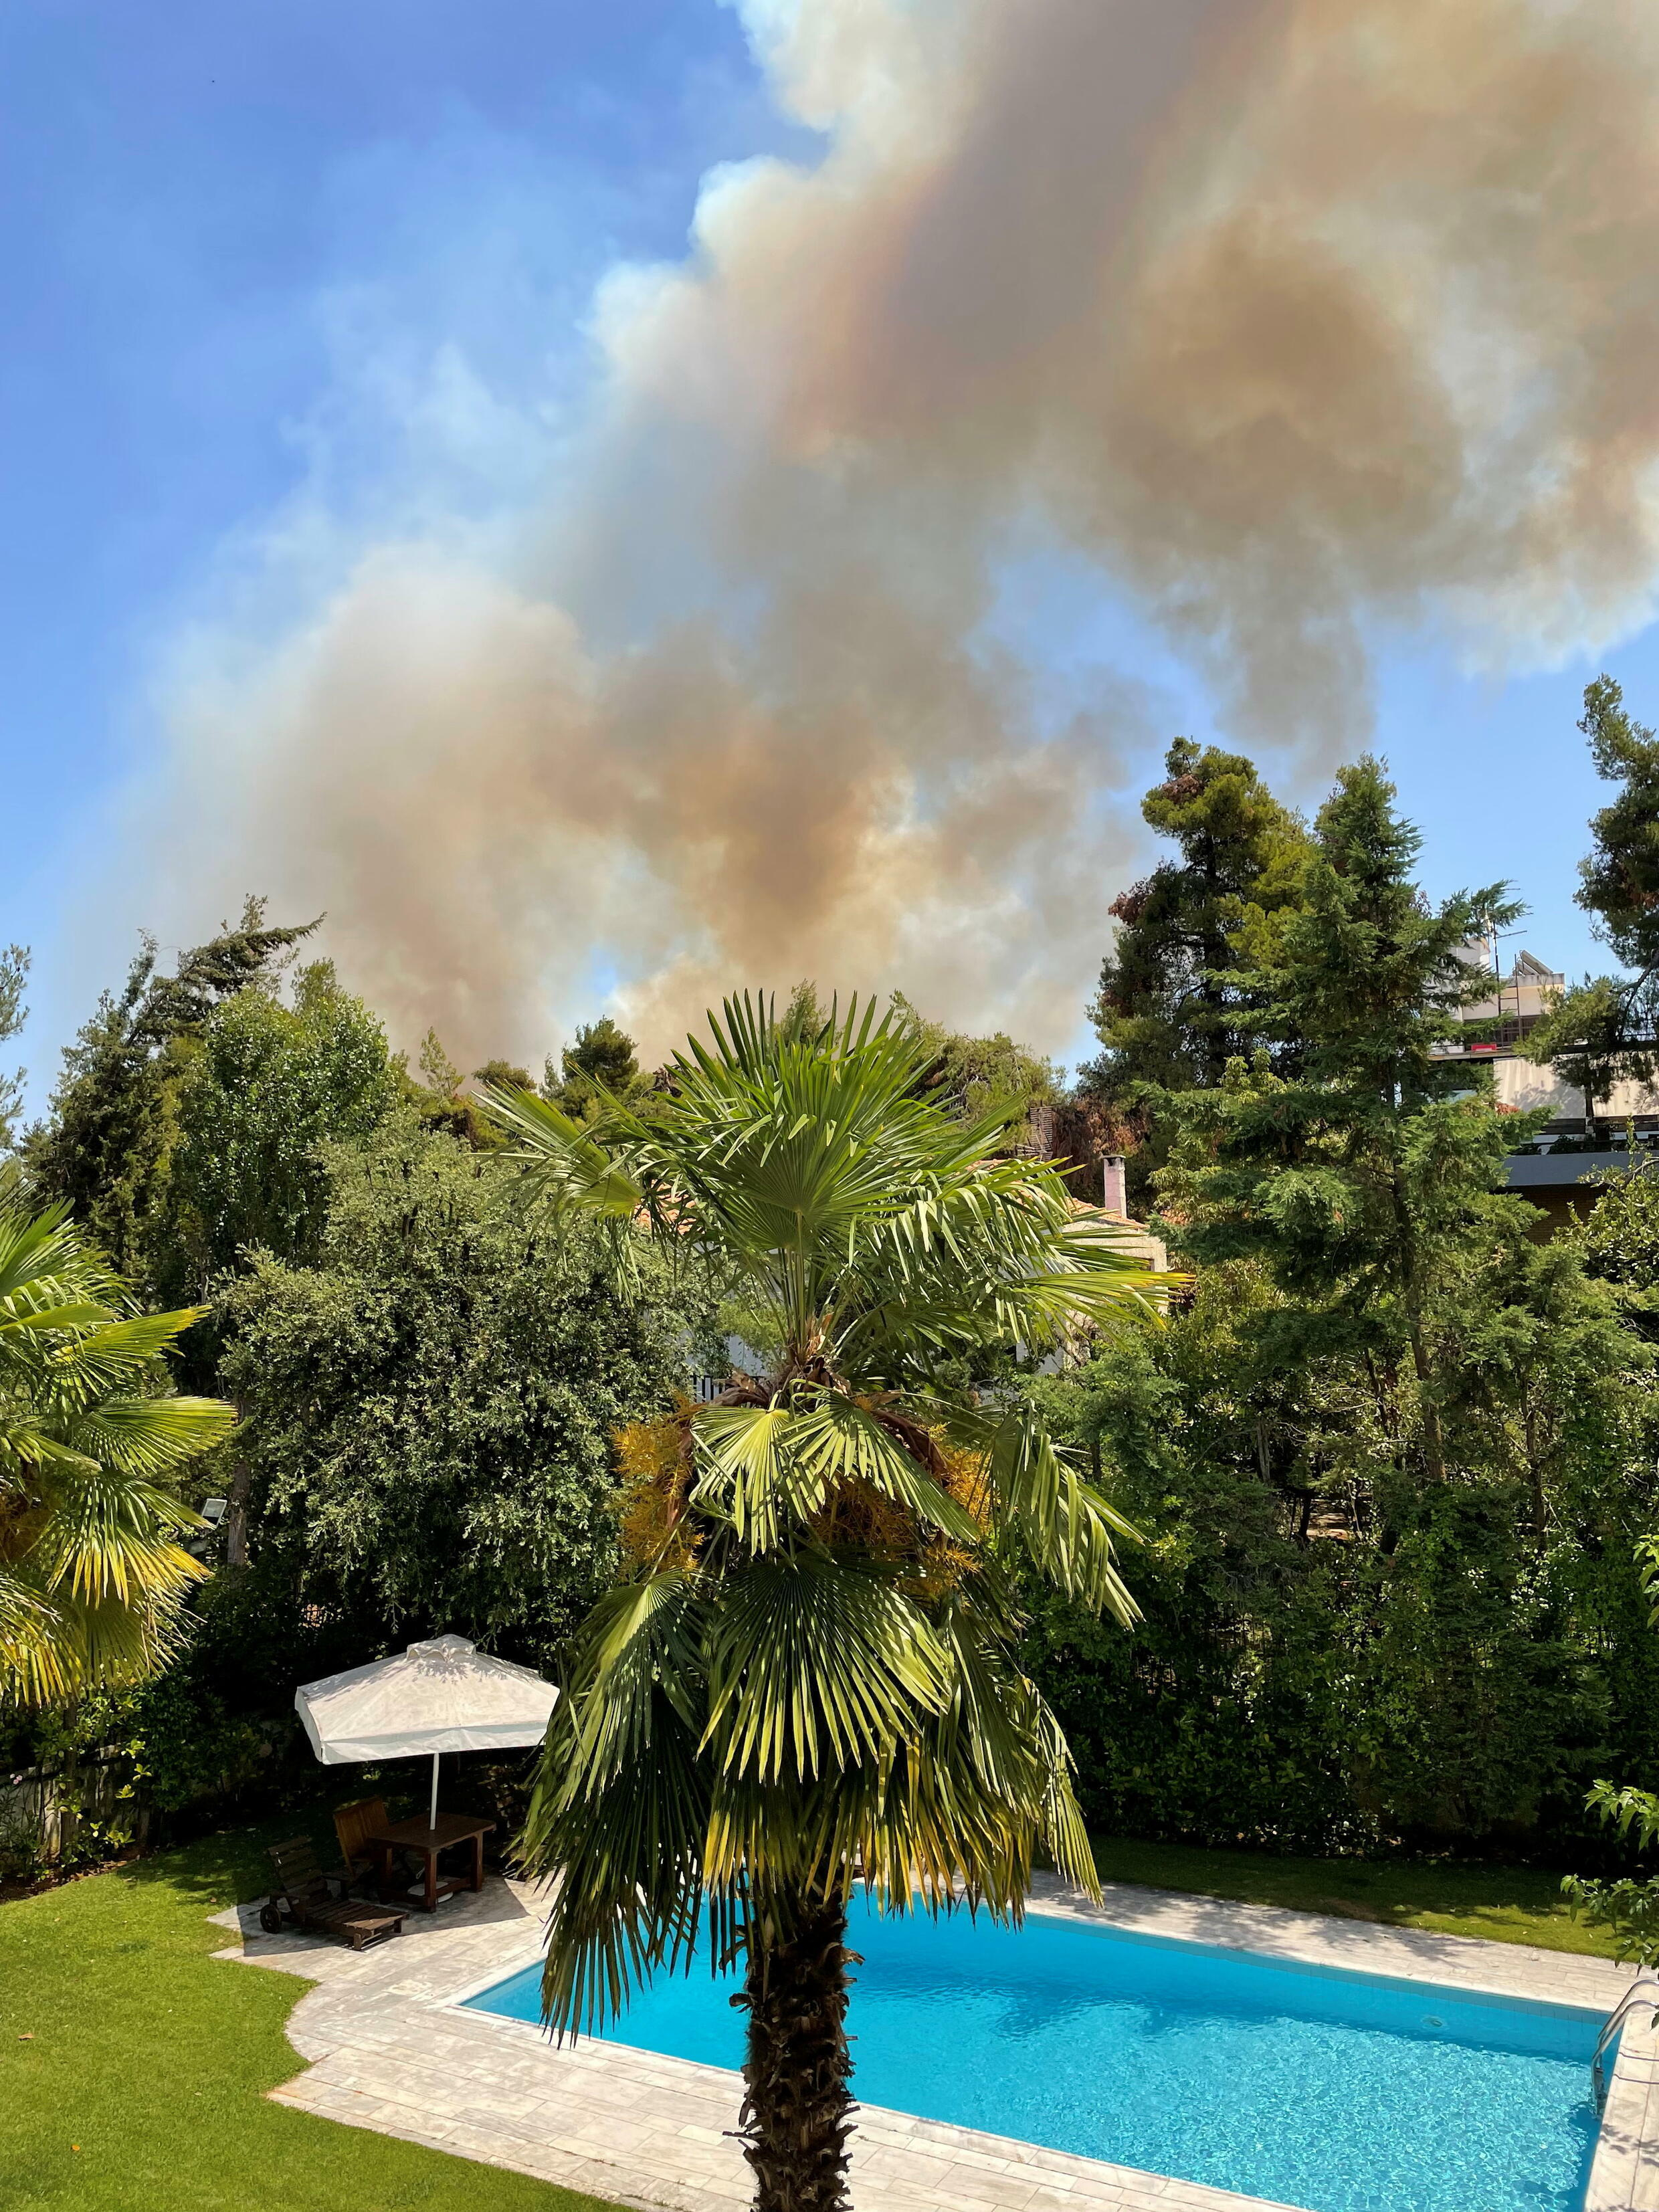 2021-07-27T133010Z_1379317542_RC2YSO9TJR1Y_RTRMADP_3_EUROPE-WEATHER-GREECE-FIRES-UGC